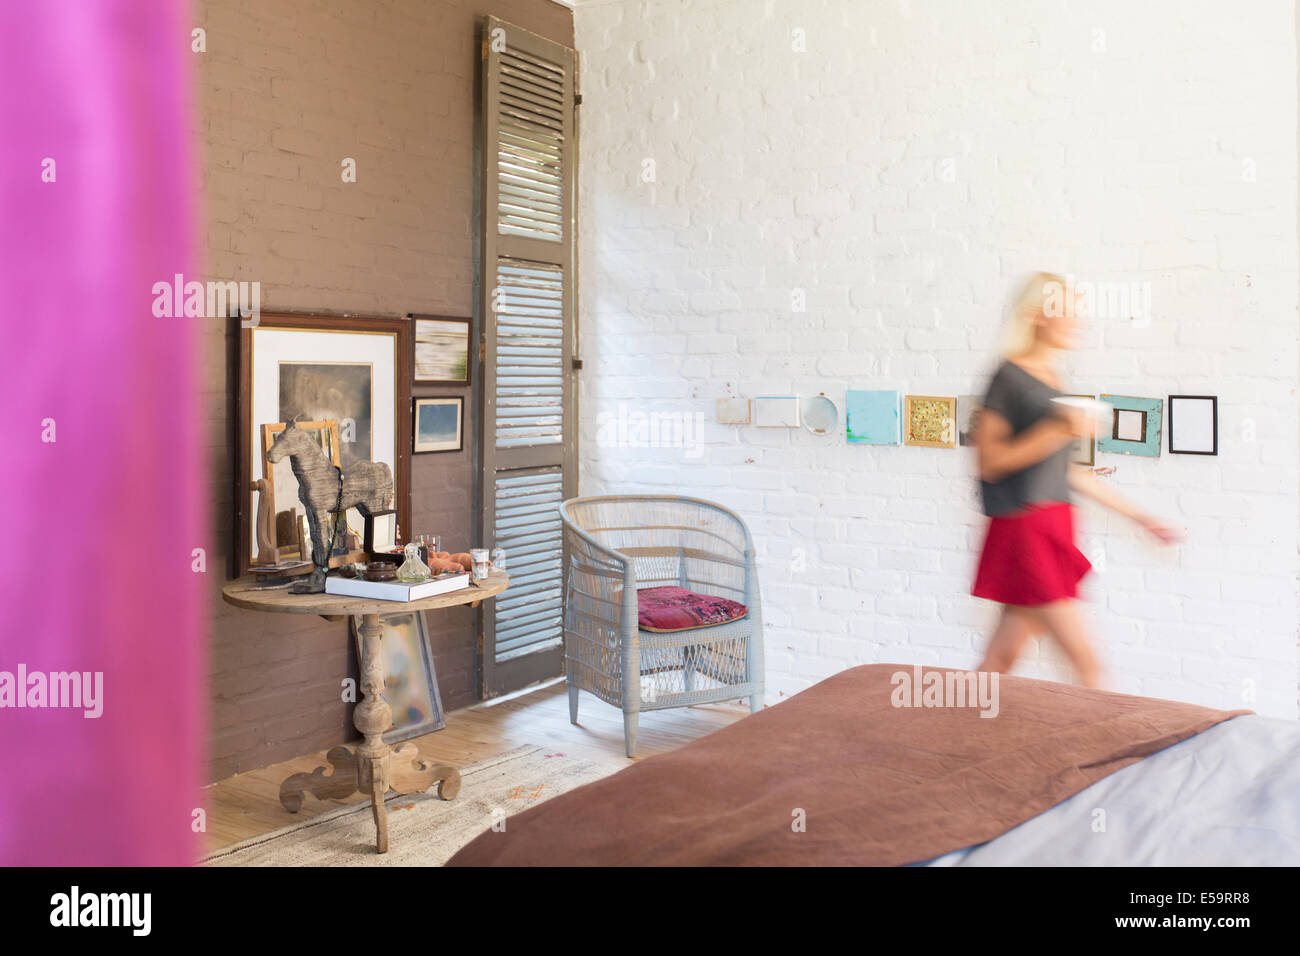 Blurred view of woman walking in bedroom Photo Stock